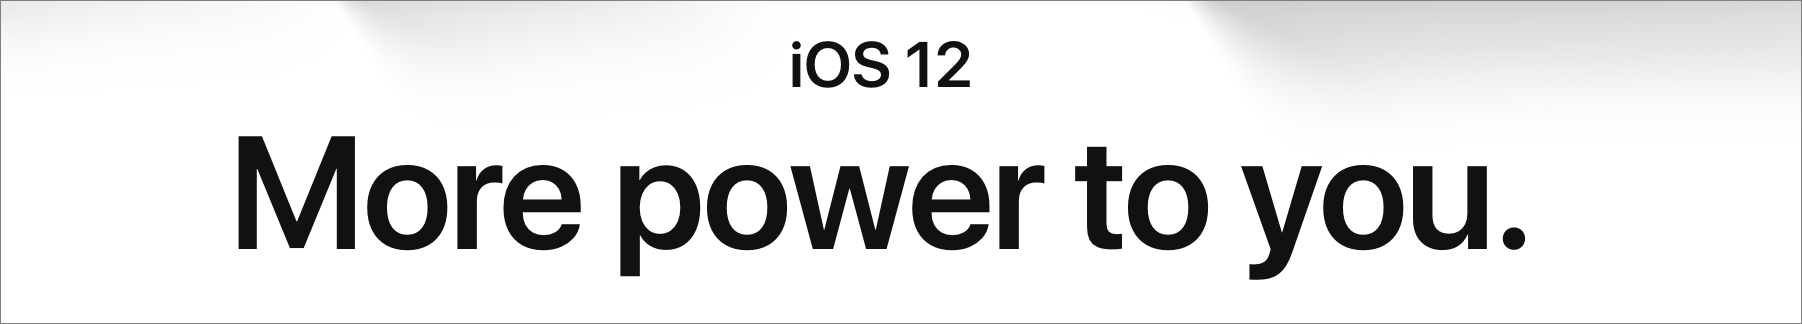 iOS 12 is a different story, particularly if you have an older iPhone or iPad. That's because Apple has focused on improving performance for such devices. If your device is bogging down, iOS 12 may give it a new lease on life. Also compelling is Screen Time, which helps you track your usage and set limits if you're unhappy about how much time you spend giving Facebook your personal data. Screen Time even works for your entire family, so it could make dinner less device-intensive. A beefed-up Do Not Disturb lets you keep your iPhone from nagging you so much, and new features let you tamp down excessive notifications more easily. Finally, if you do the same things repeatedly, Siri Shortcuts can help you create your own Siri voice commands.  Our take is that iOS 12 is a good upgrade. Don't pull the trigger instantly, since Apple may discover important bugs in the first week or two, but after that, upgrade when you have time to play with the new features.